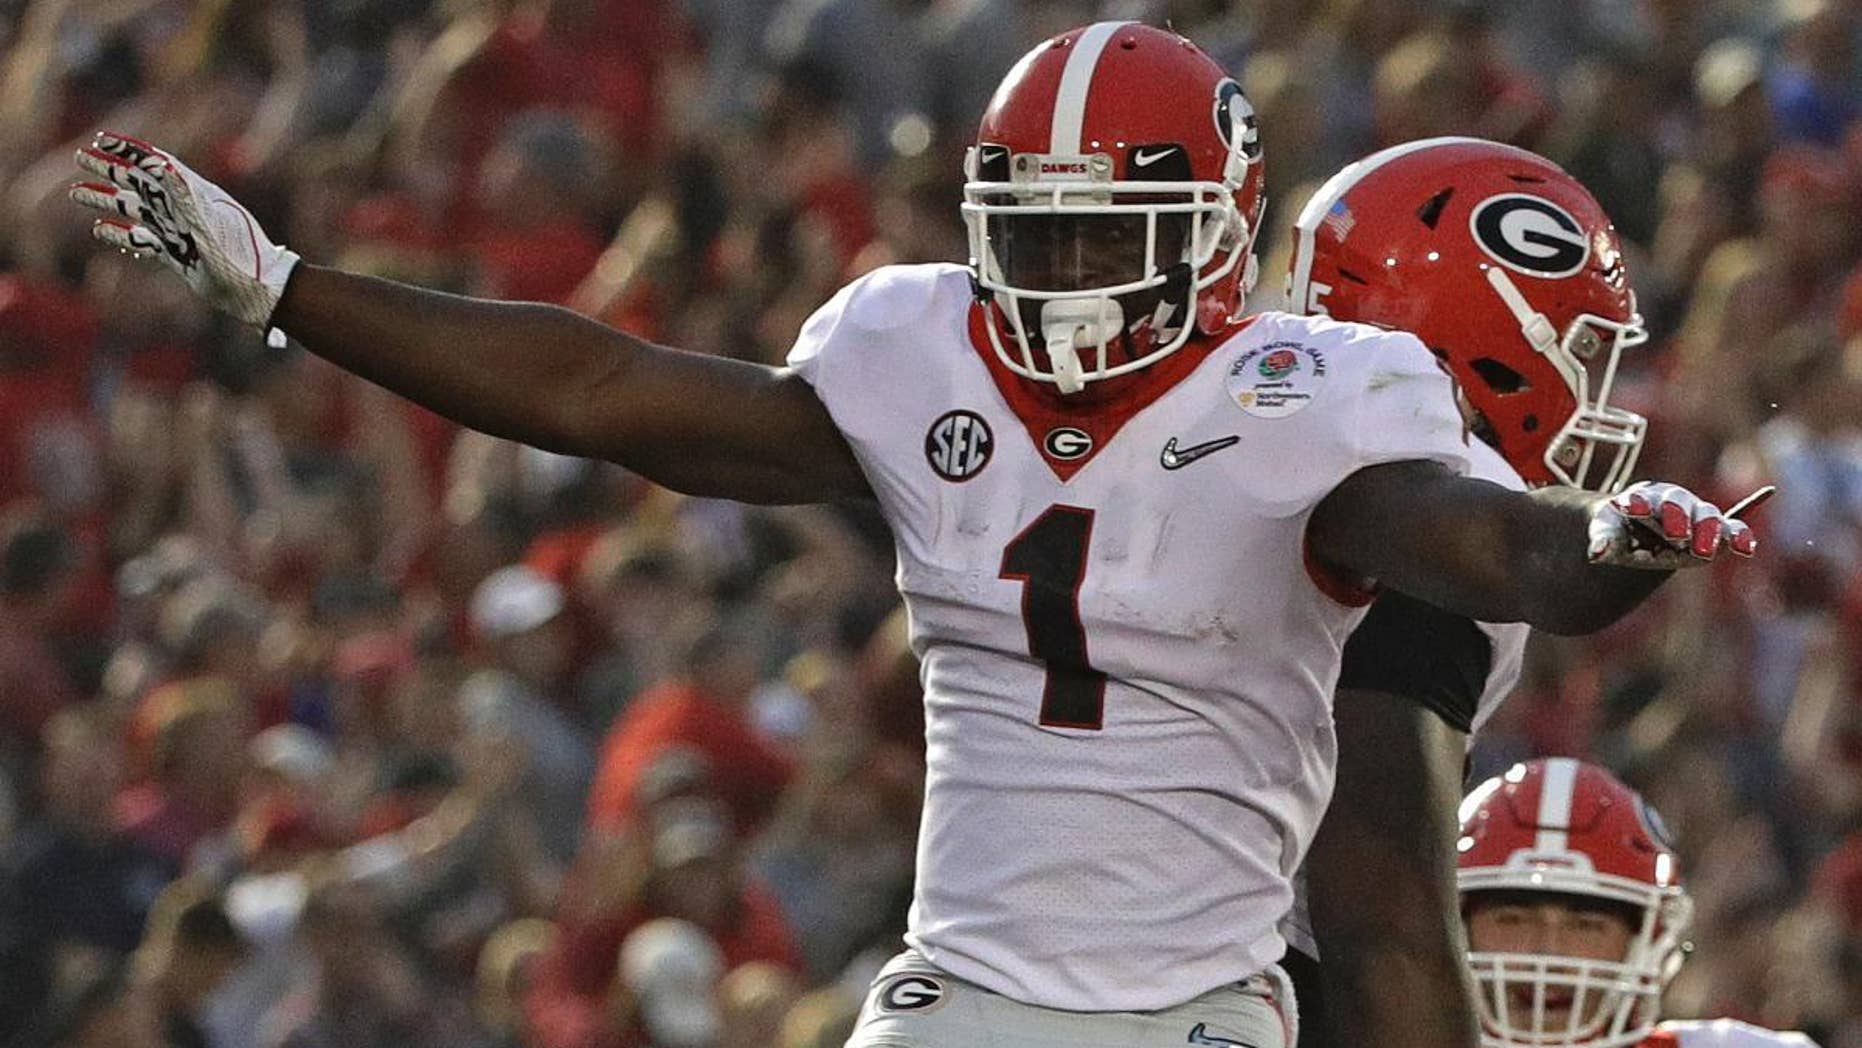 Georgia running back Sony Michel (1) celebrates after he scored a touchdown against Oklahoma during the second half of the Rose Bowl NCAA college football game Monday in Pasadena, Calif. (AP Photo/Jae C. Hong)